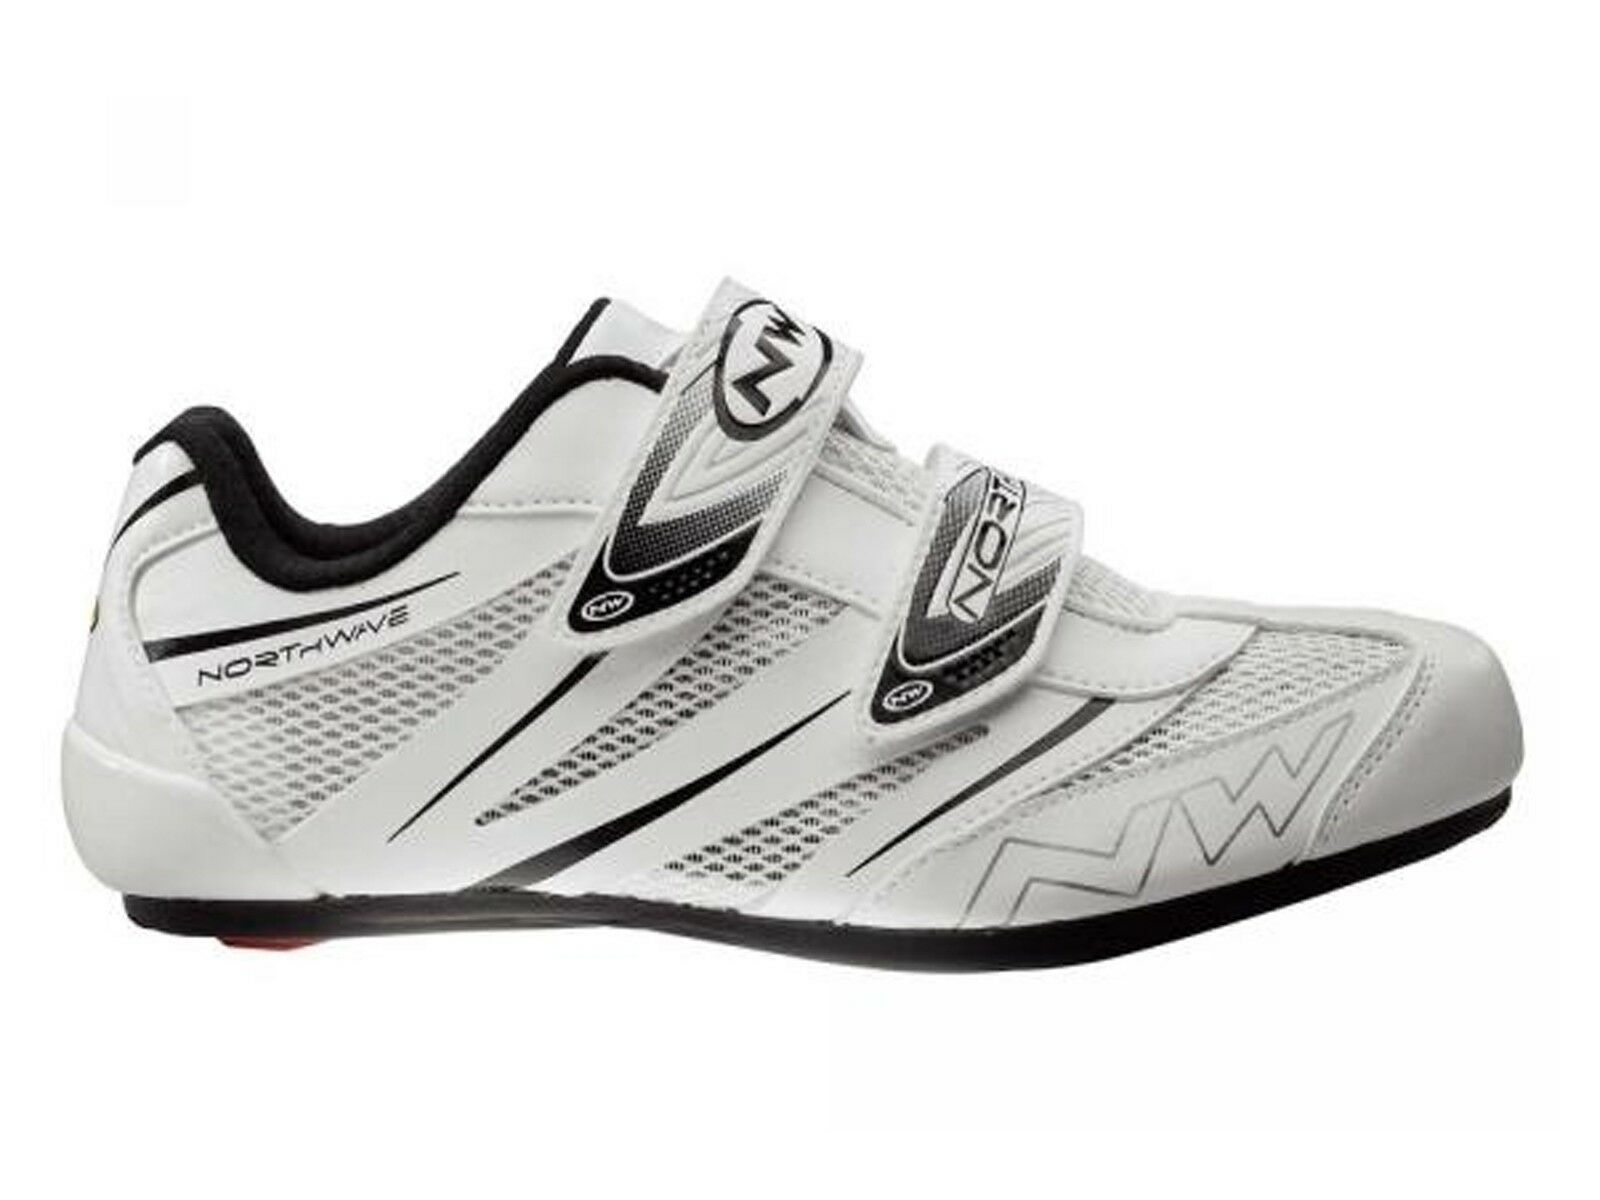 shoes CICLISMO STRADA men NORTHWAVE  80121008 JET PRO WHITE